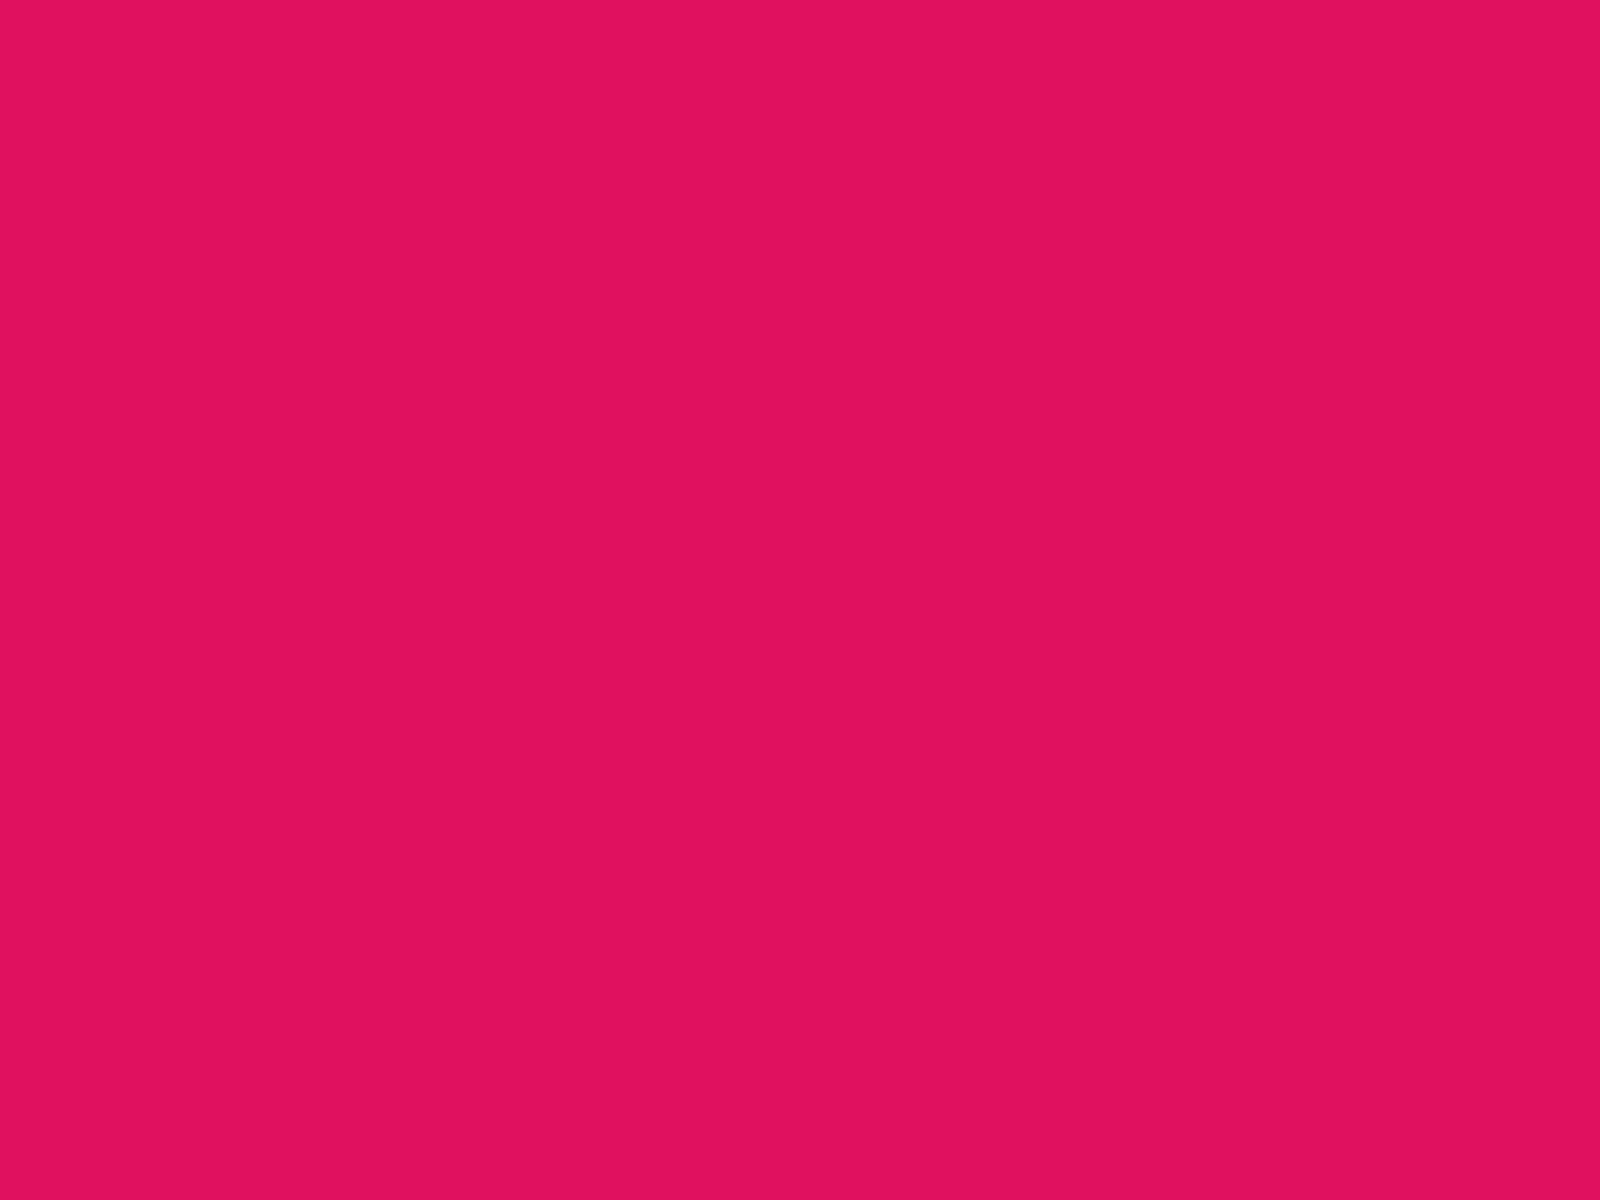 1600x1200 Ruby Solid Color Background